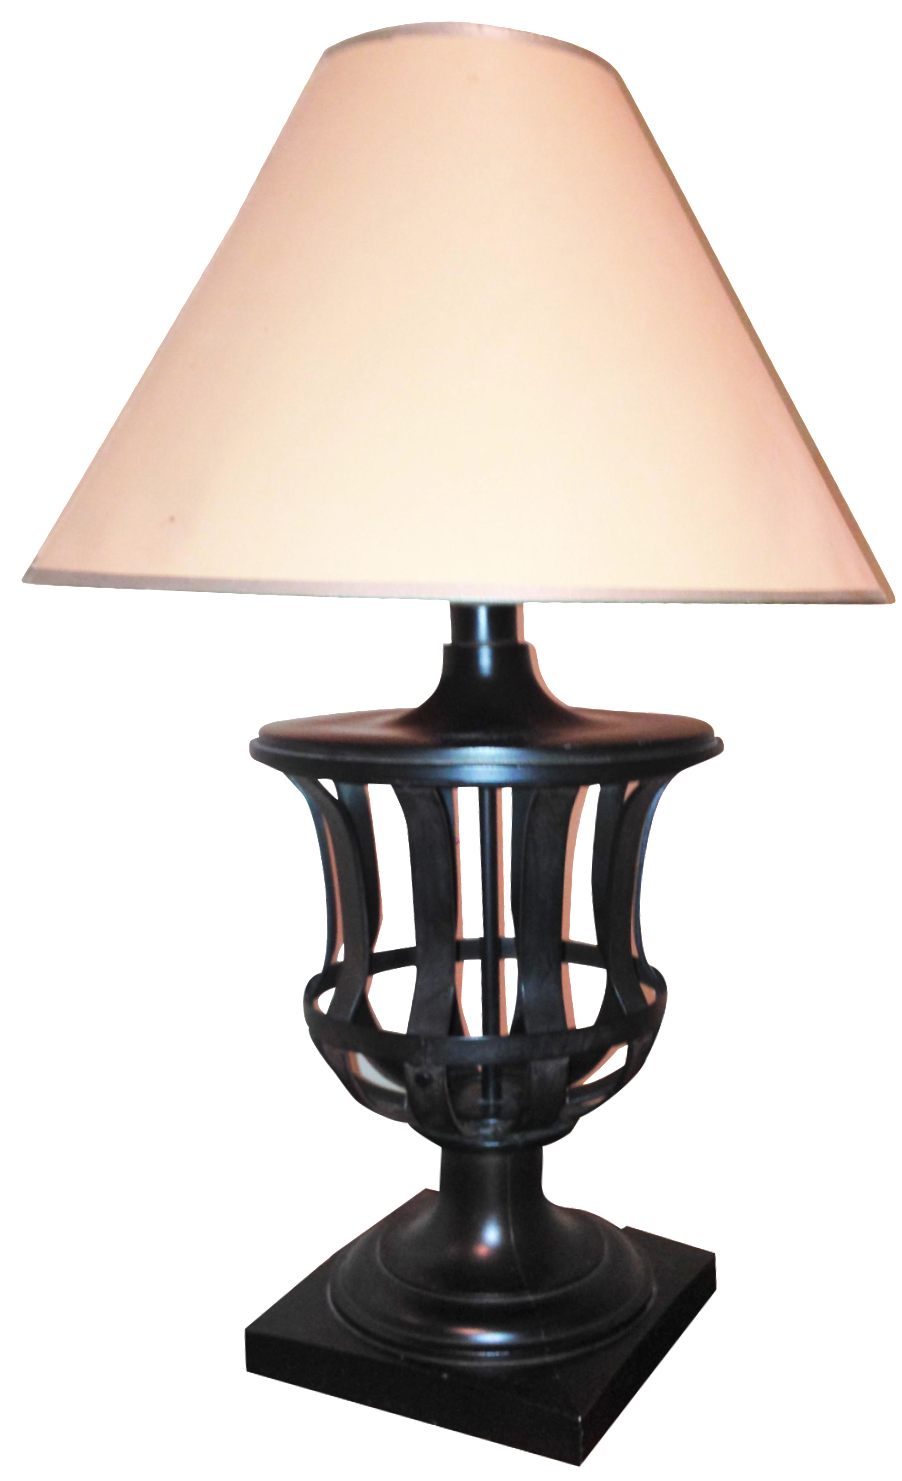 Pharmacy Lamps Restoration Hardware Vintage & Used Black Table Lamps | Chairish